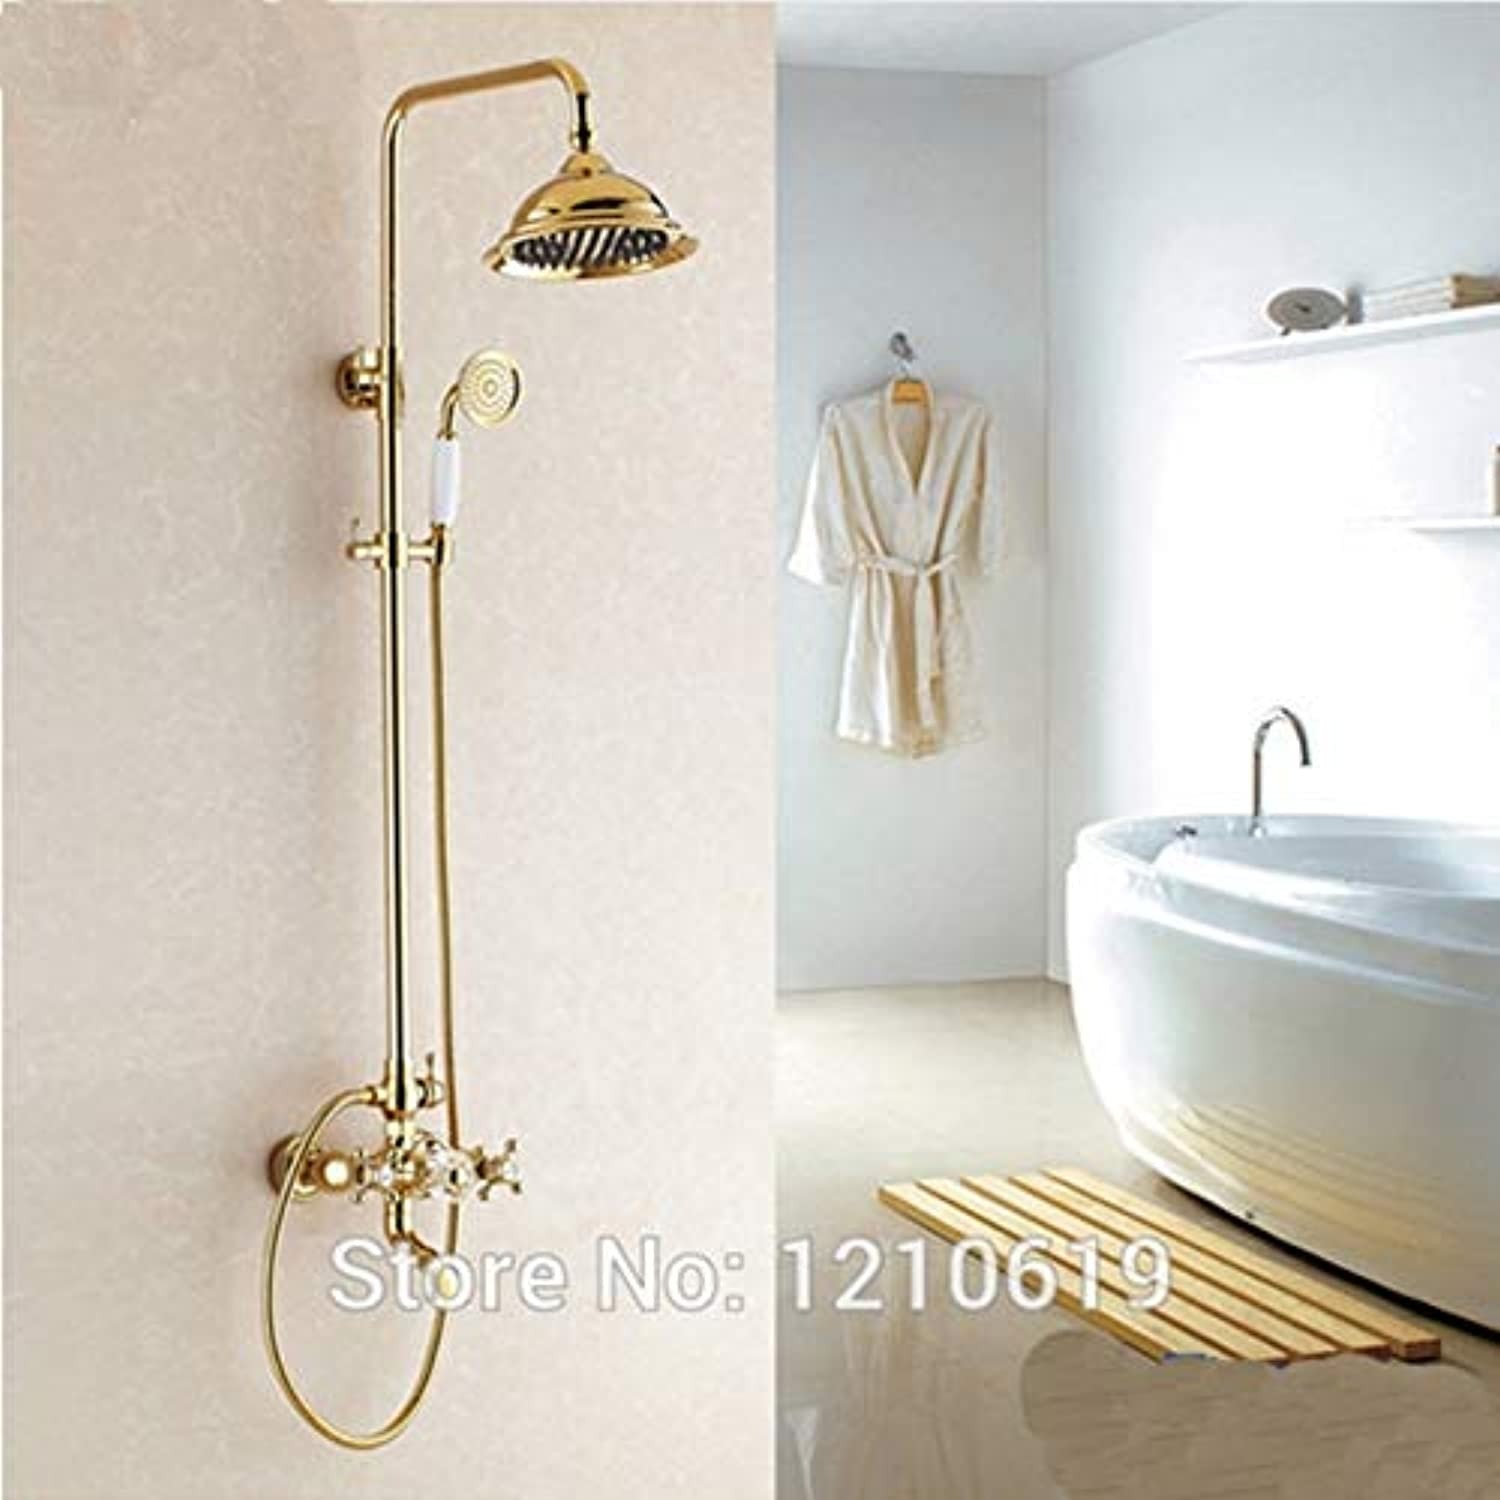 Newly US Free Shipping Wholesale And Retail Luxury Golden Polish Rainfall Shower Head Crystal Handle Shower Faucet Set Mixer Tap